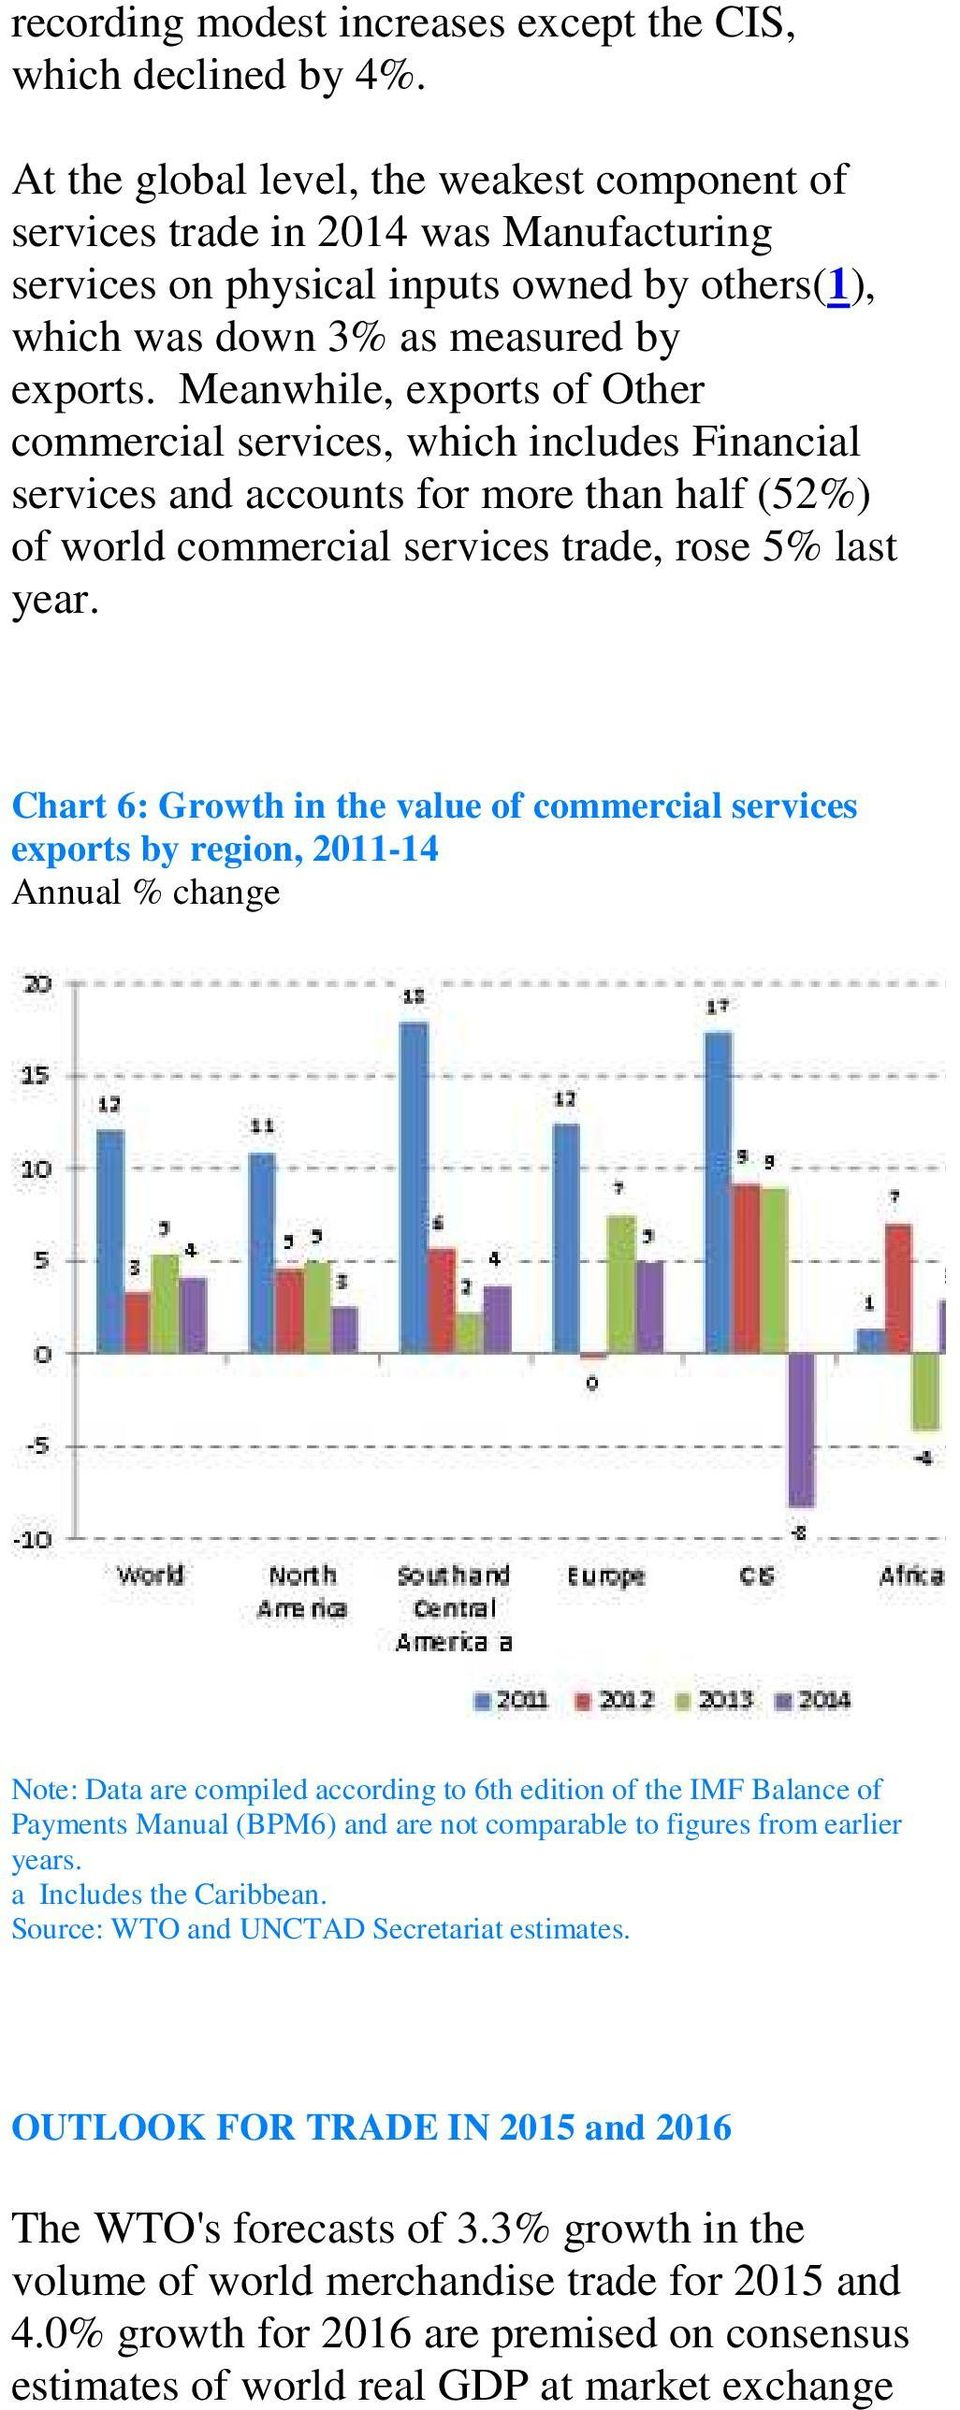 Meanwhile, exports of Other commercial services, which includes Financial services and accounts for more than half (52%) of world commercial services trade, rose 5% last year.